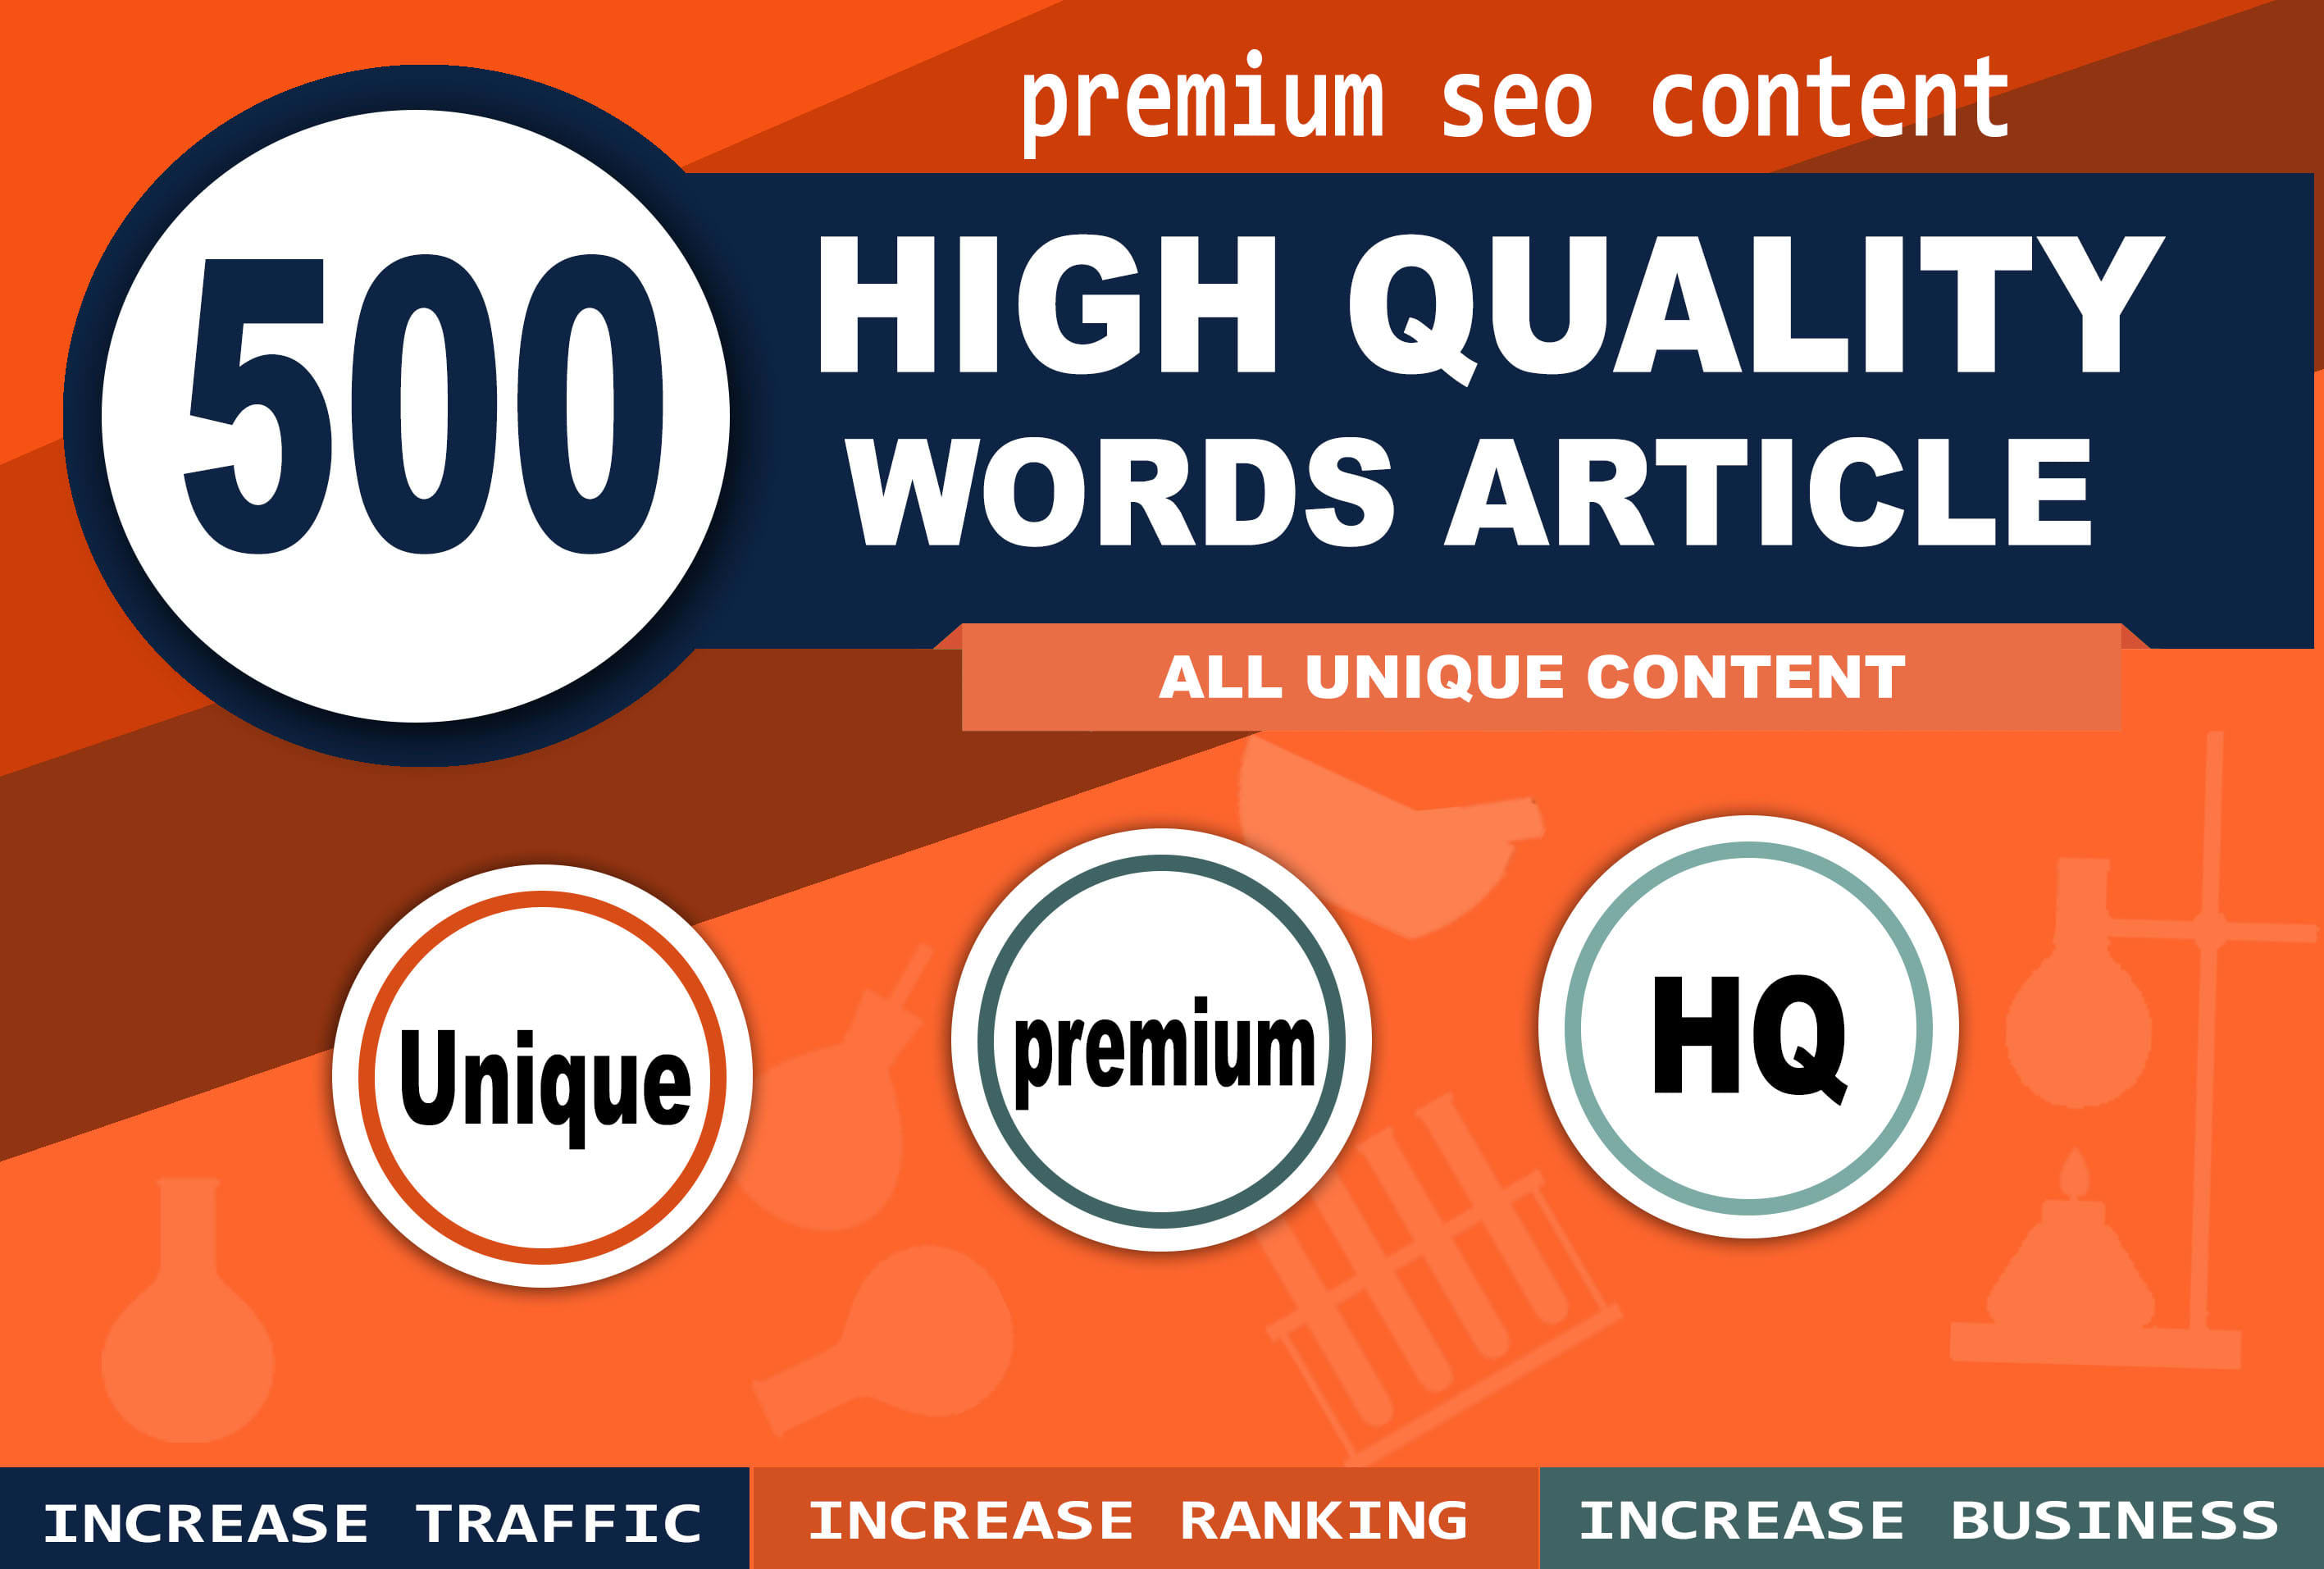 500 words high quality article within 24hrs